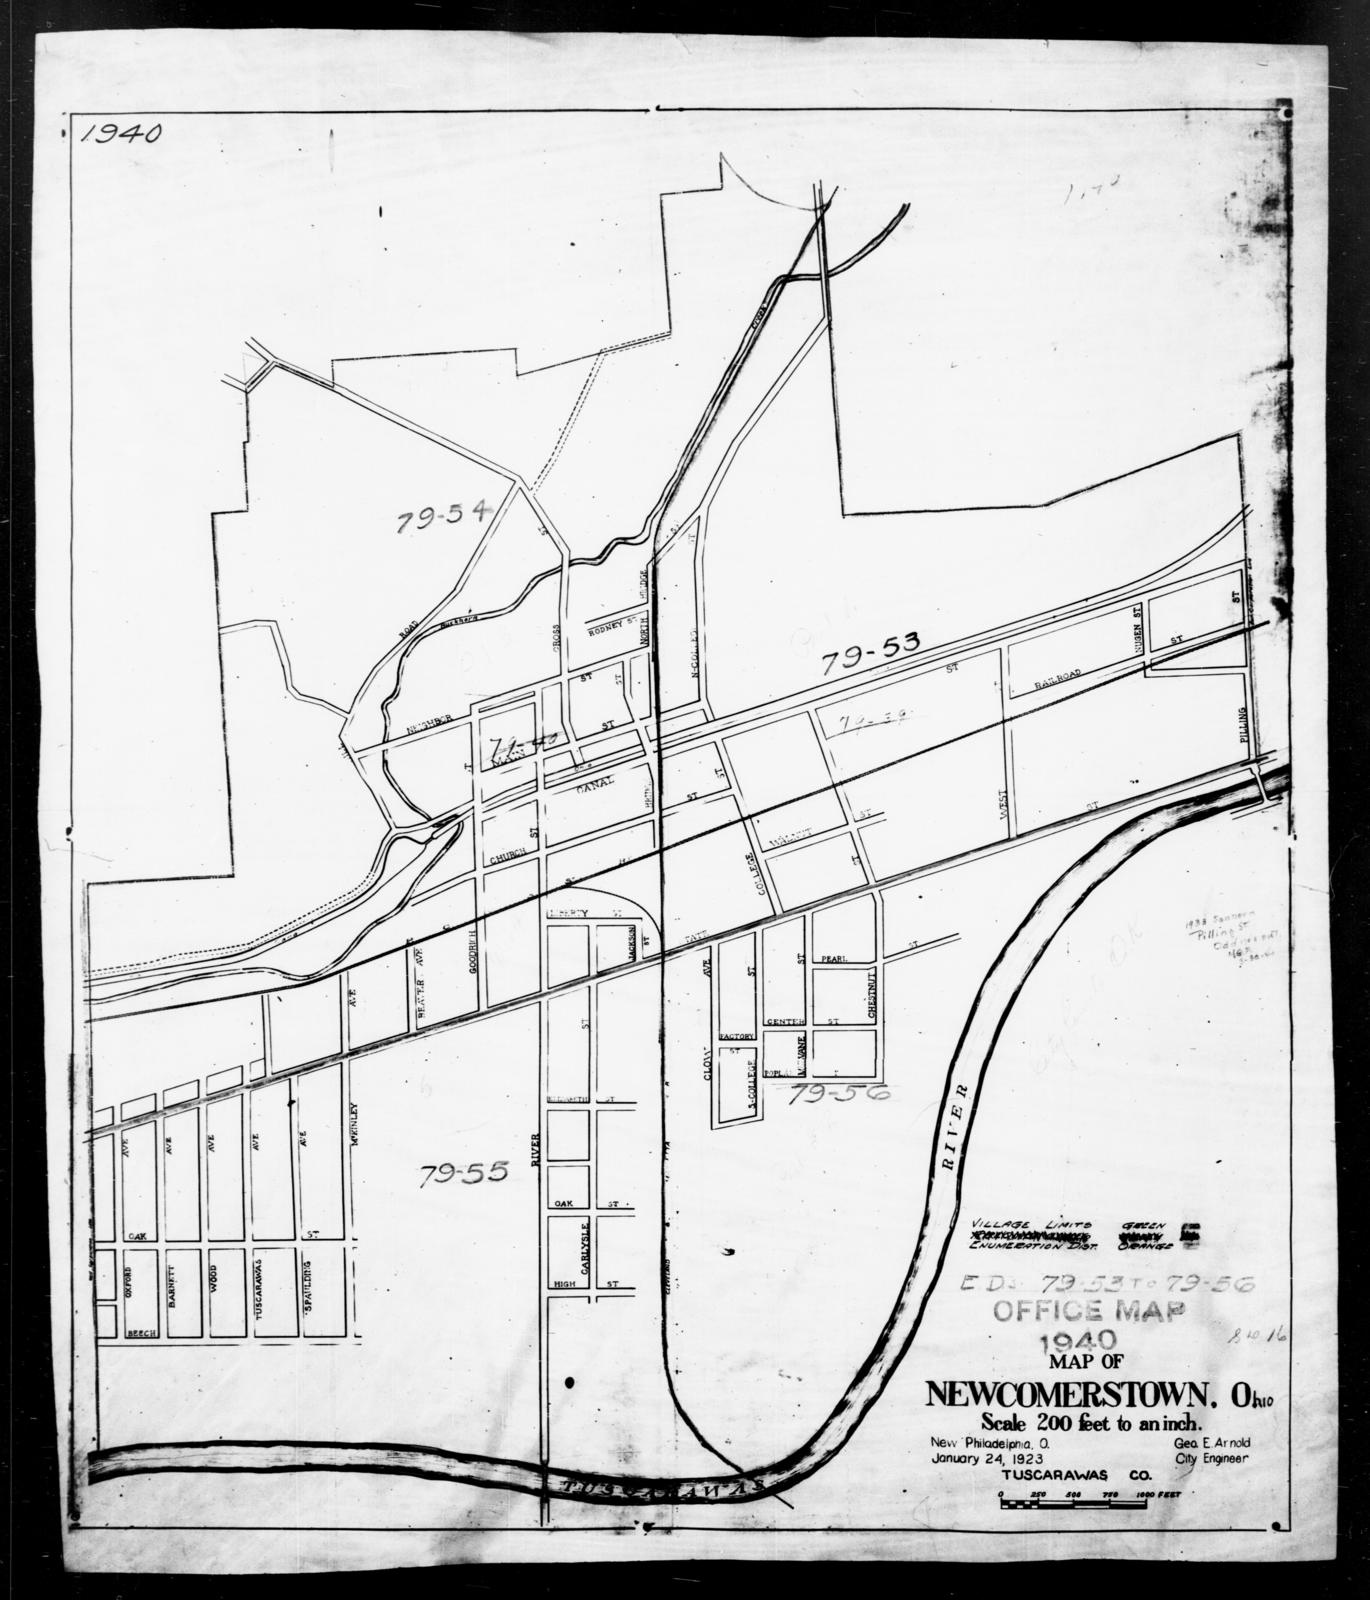 Newcomerstown Ohio Map.1940 Census Enumeration District Maps Ohio Tuscarawas County